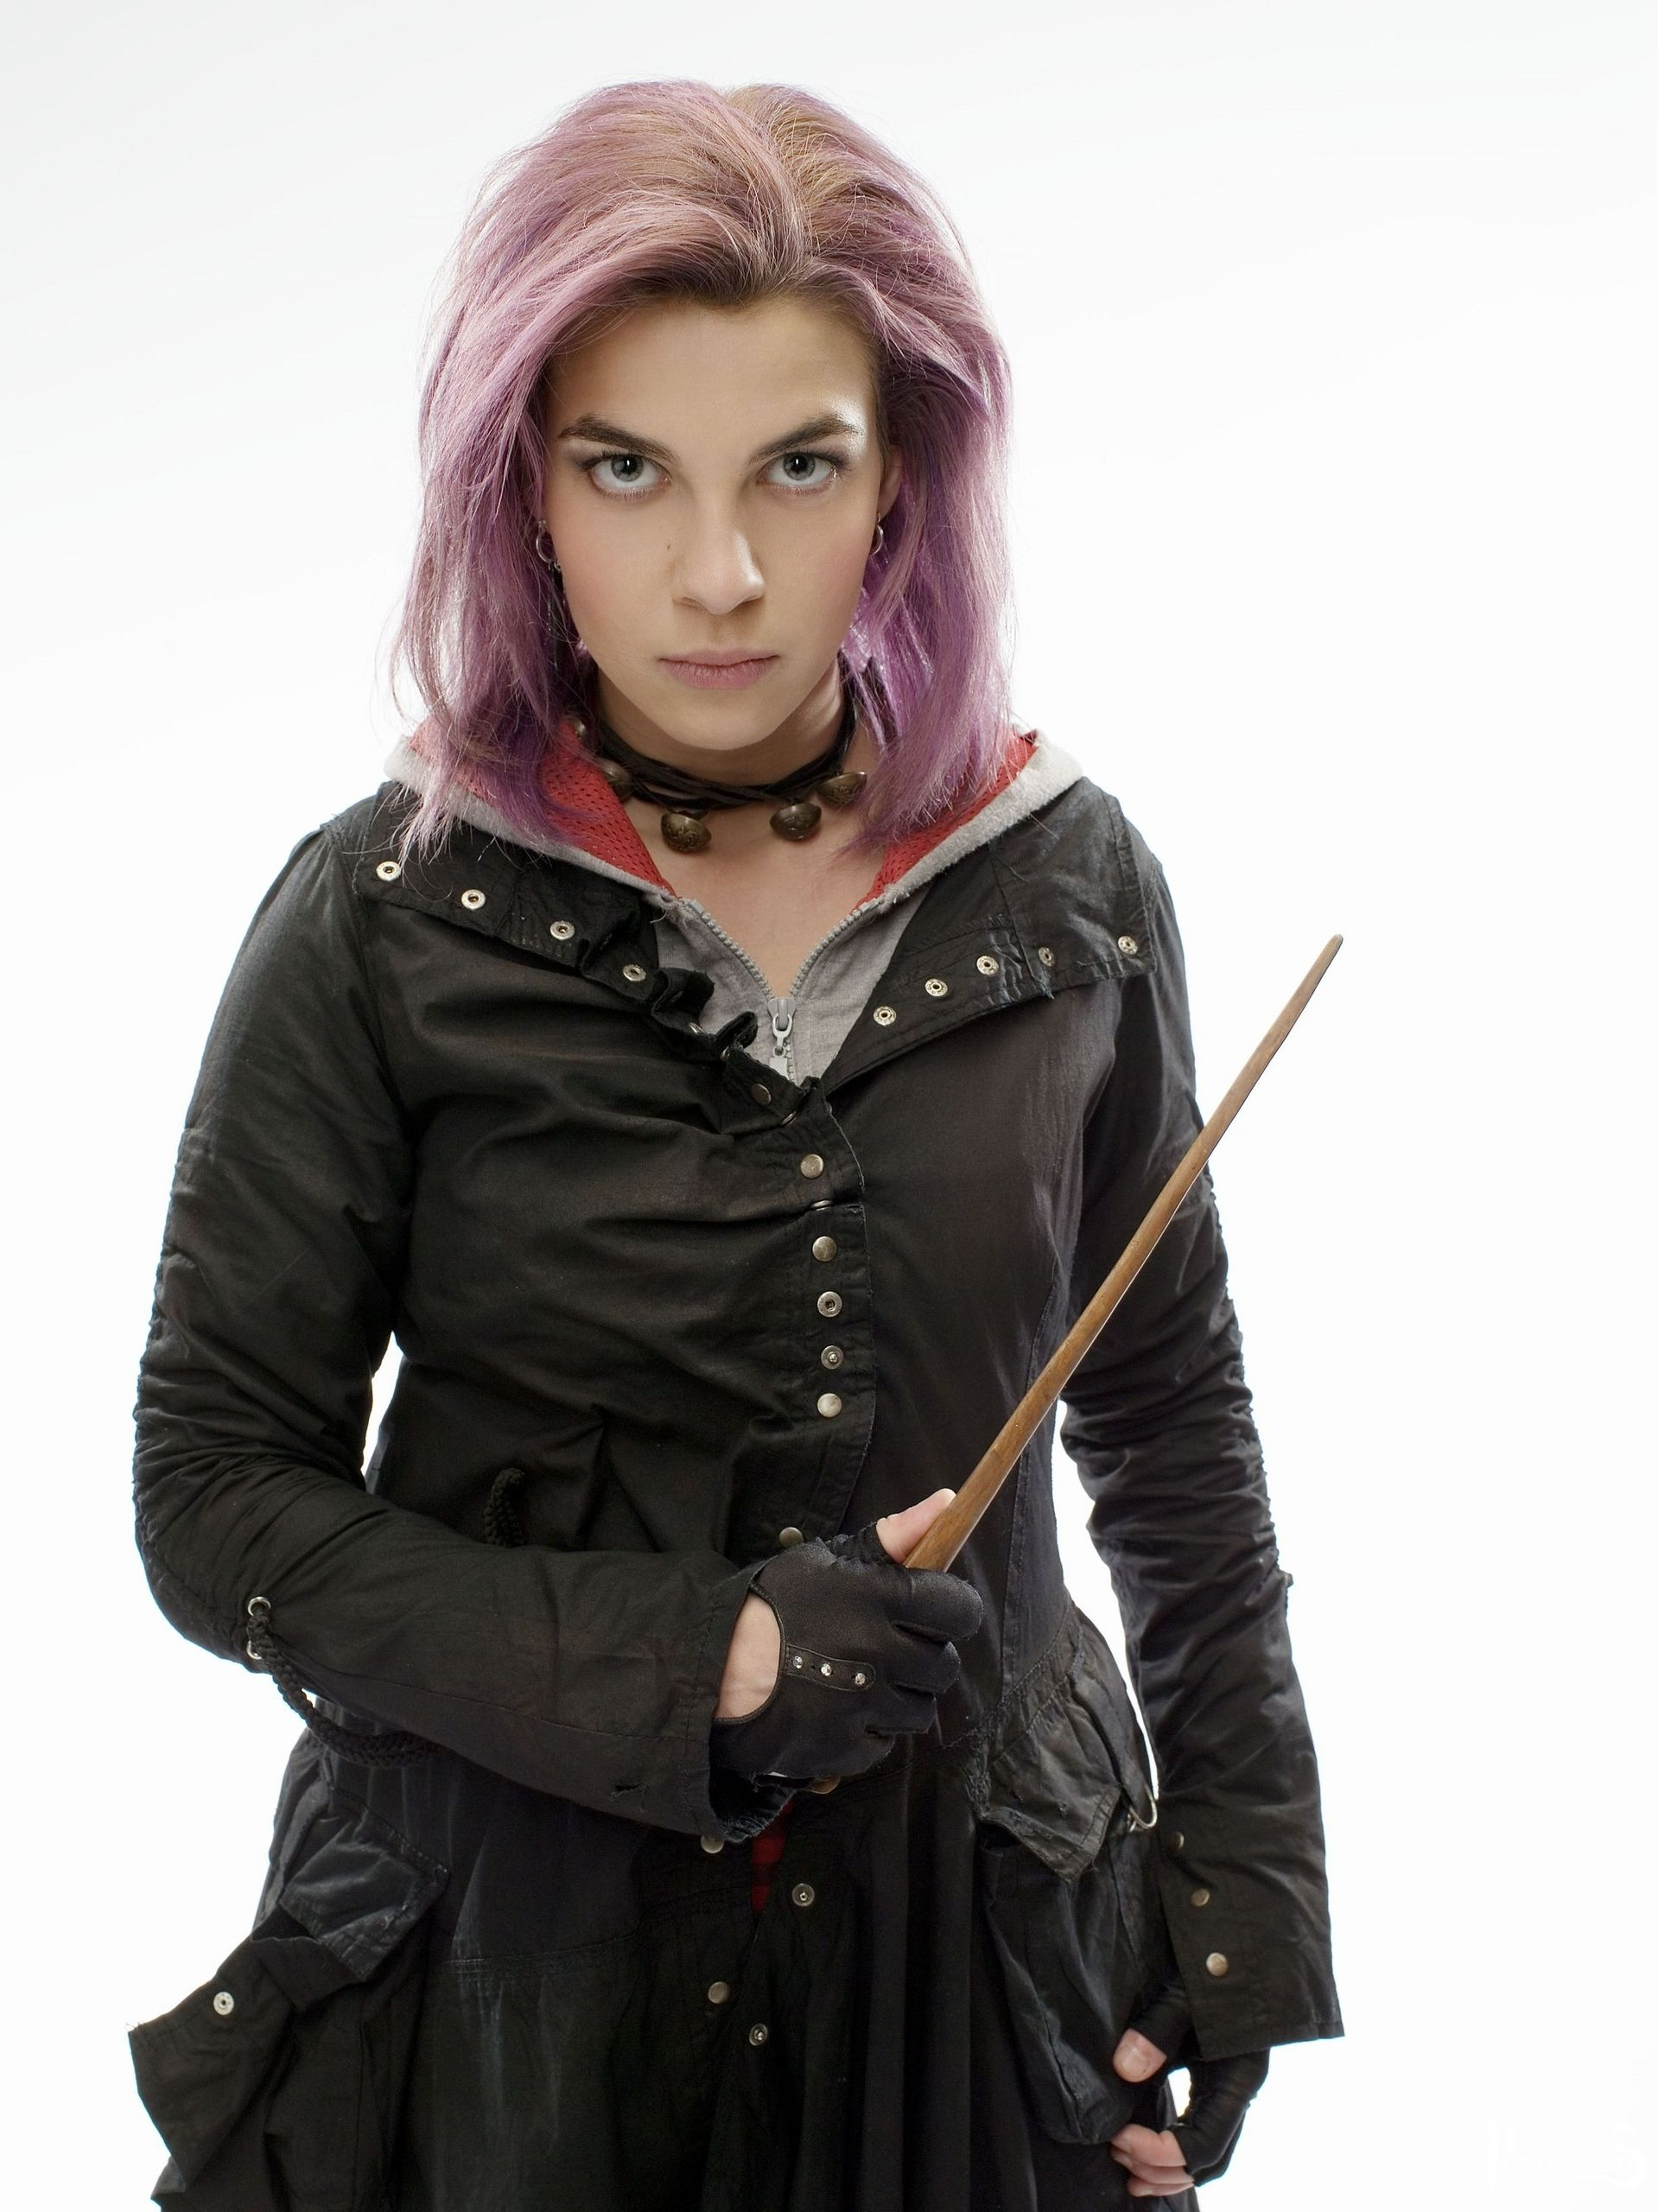 Nynphadora Tonks Harry Potter - PotterPedia.it